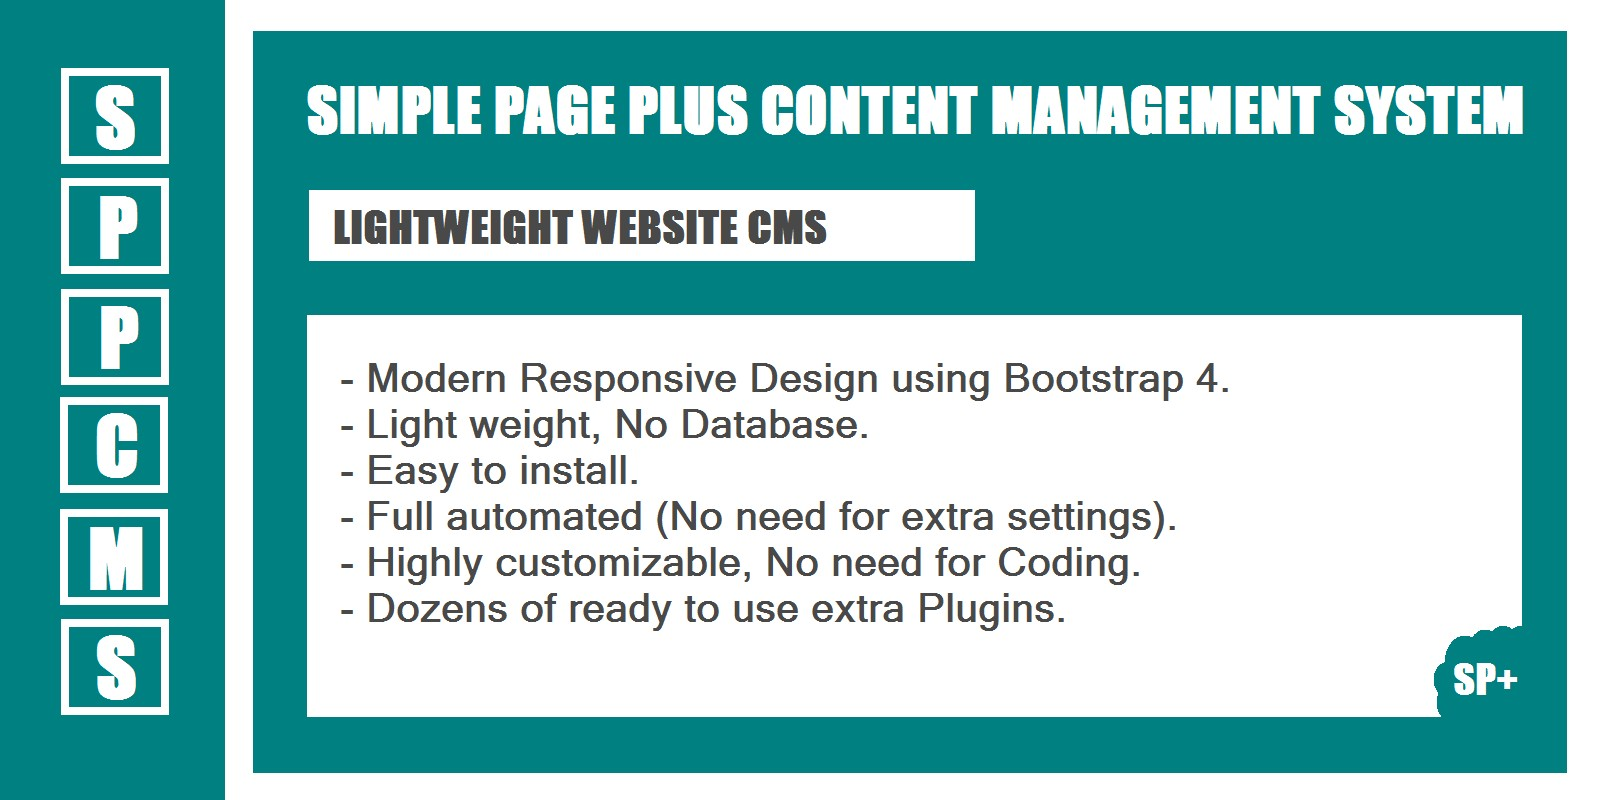 SPPcms - Lightweight Website CMS